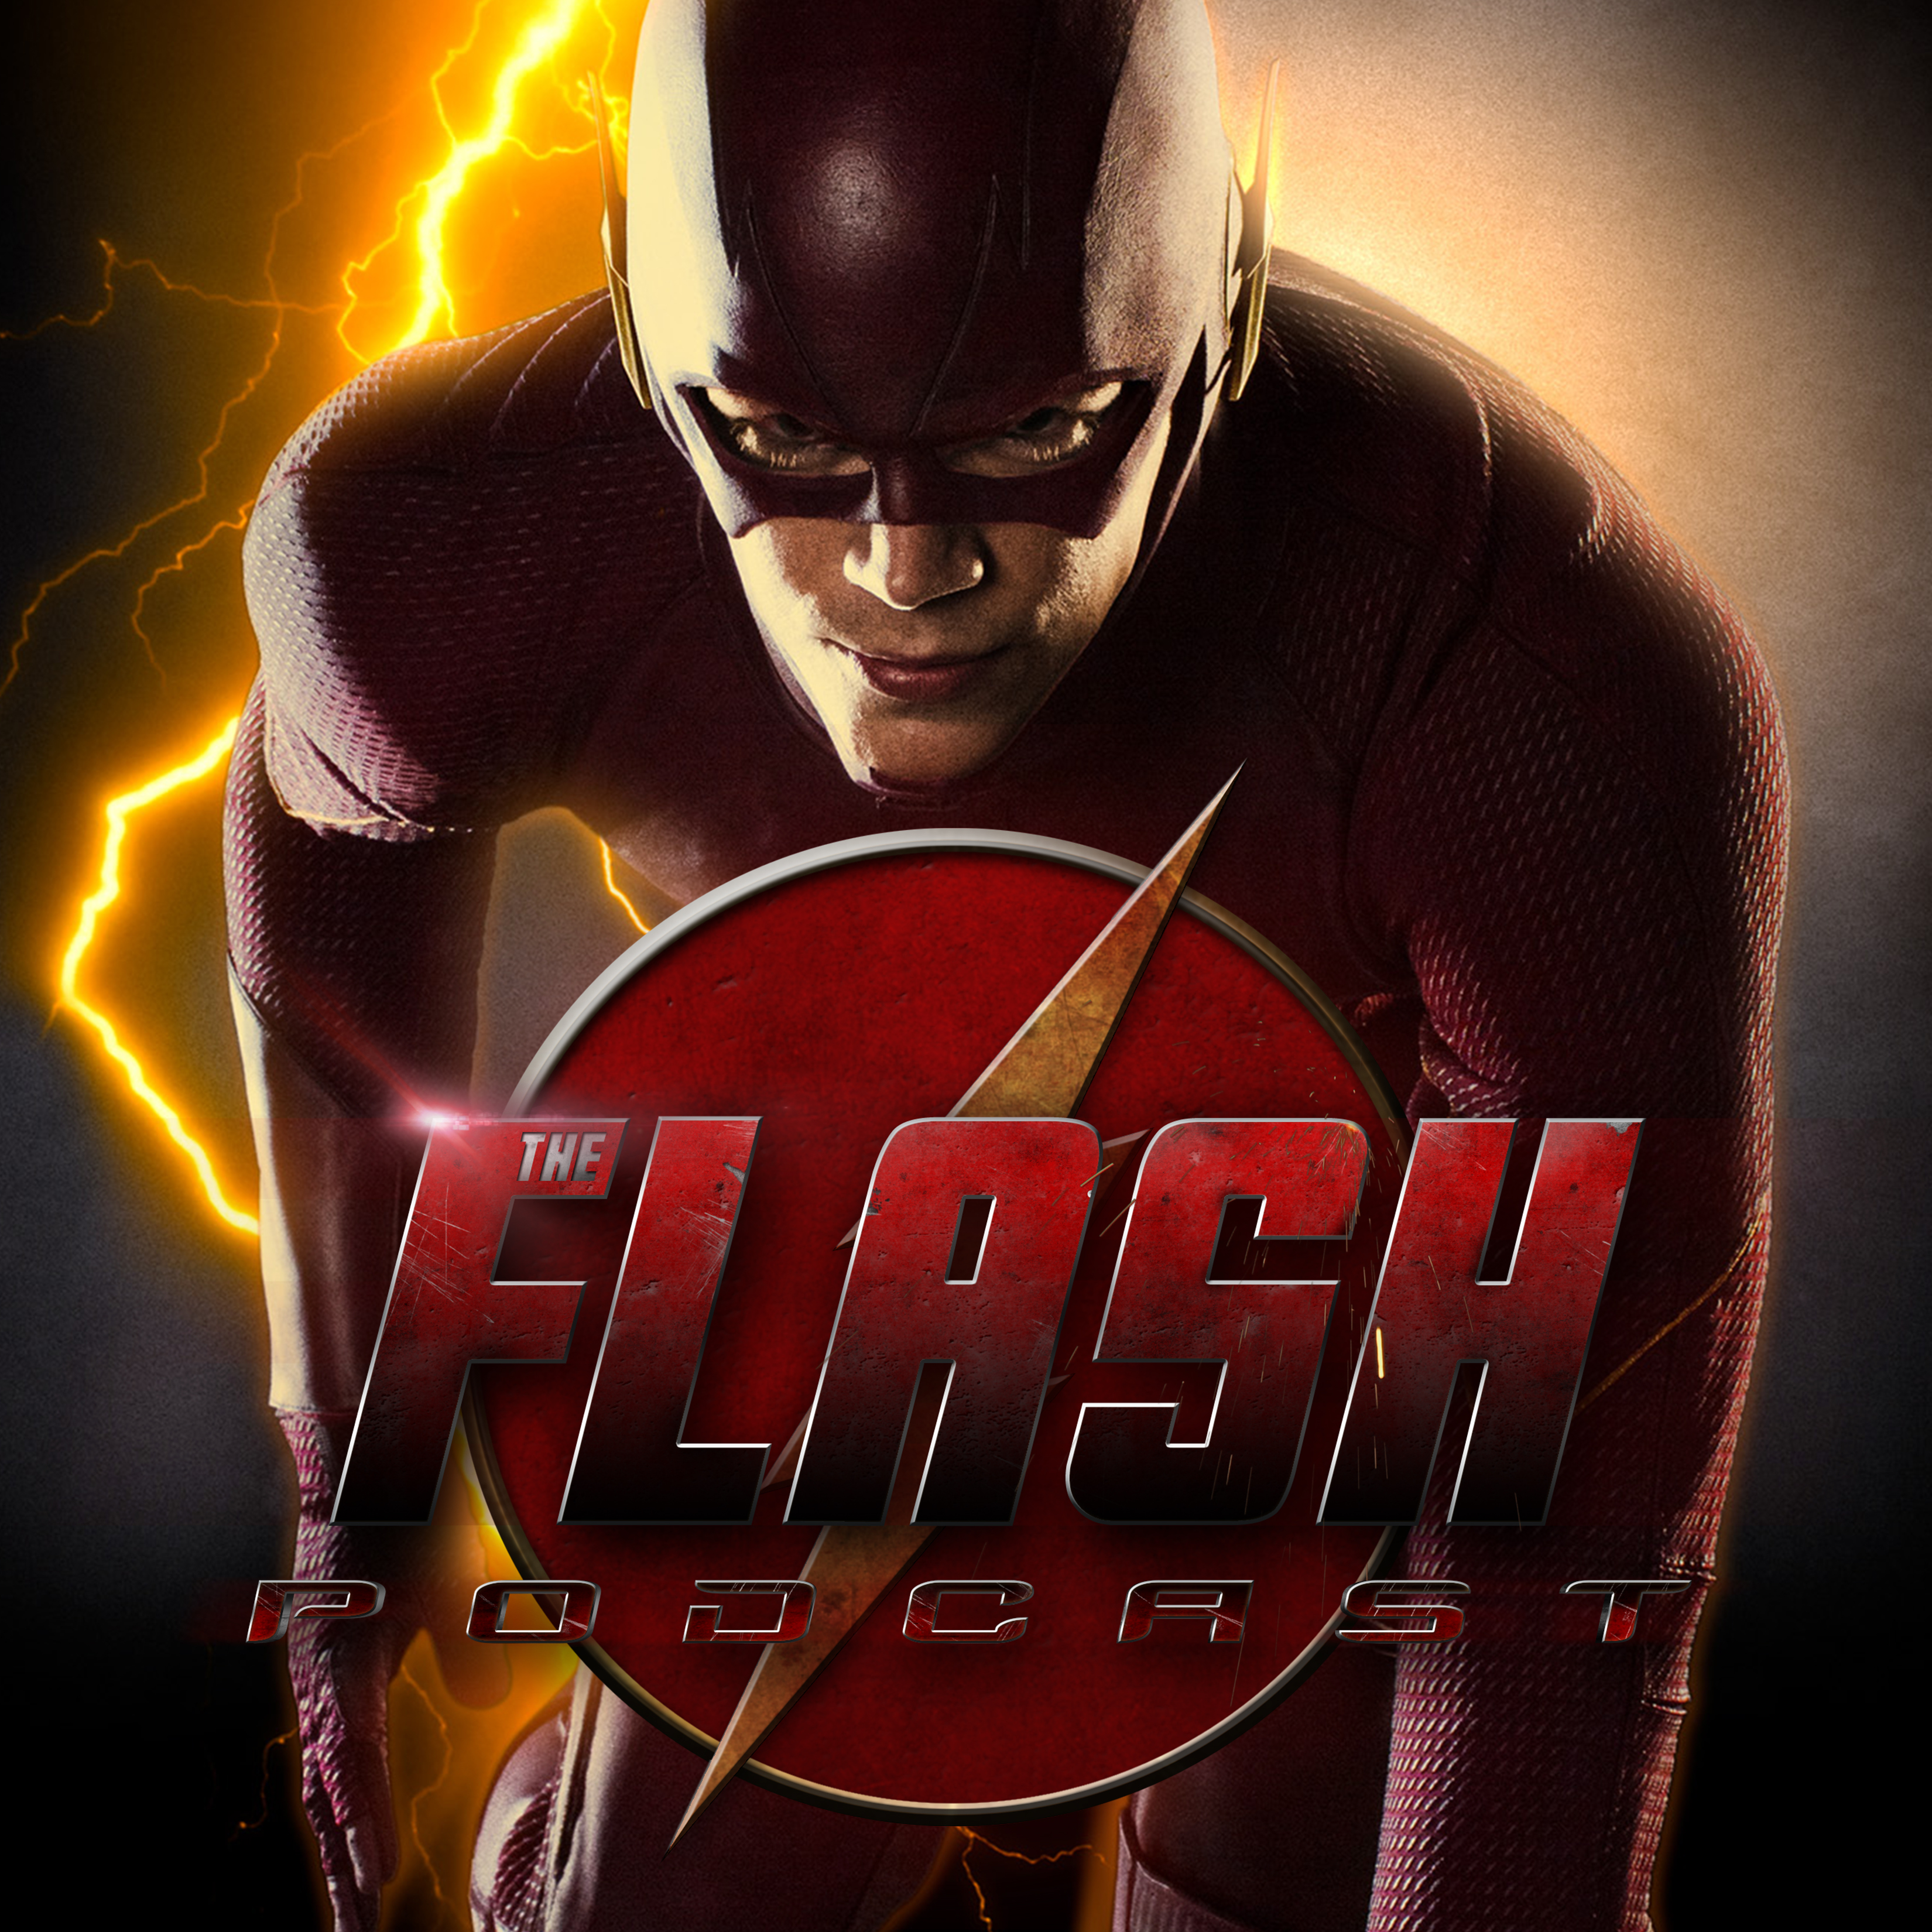 The Flash Podcast Season 1.5 - Pre-SDCC 2015 Talk